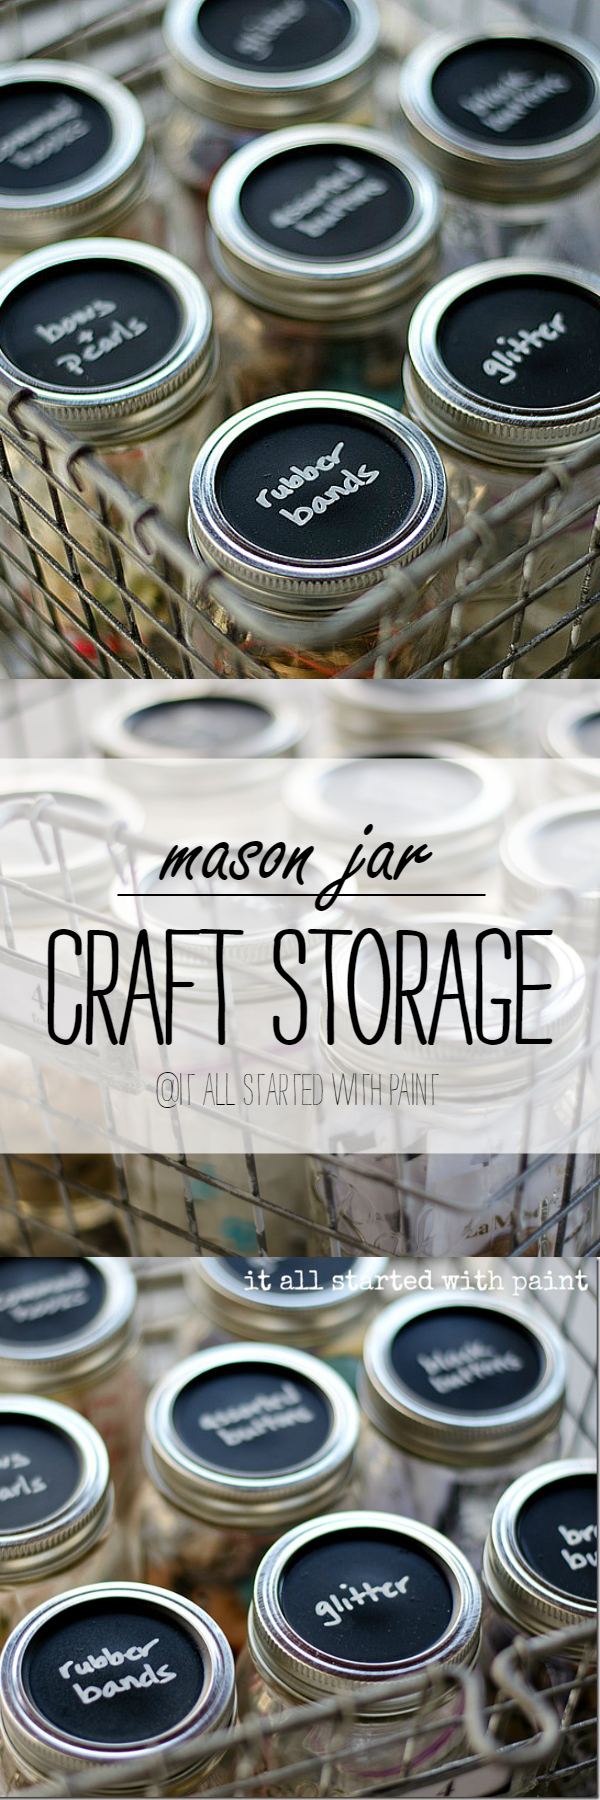 Mason Jar Craft Ideas with Chalkboard Paint